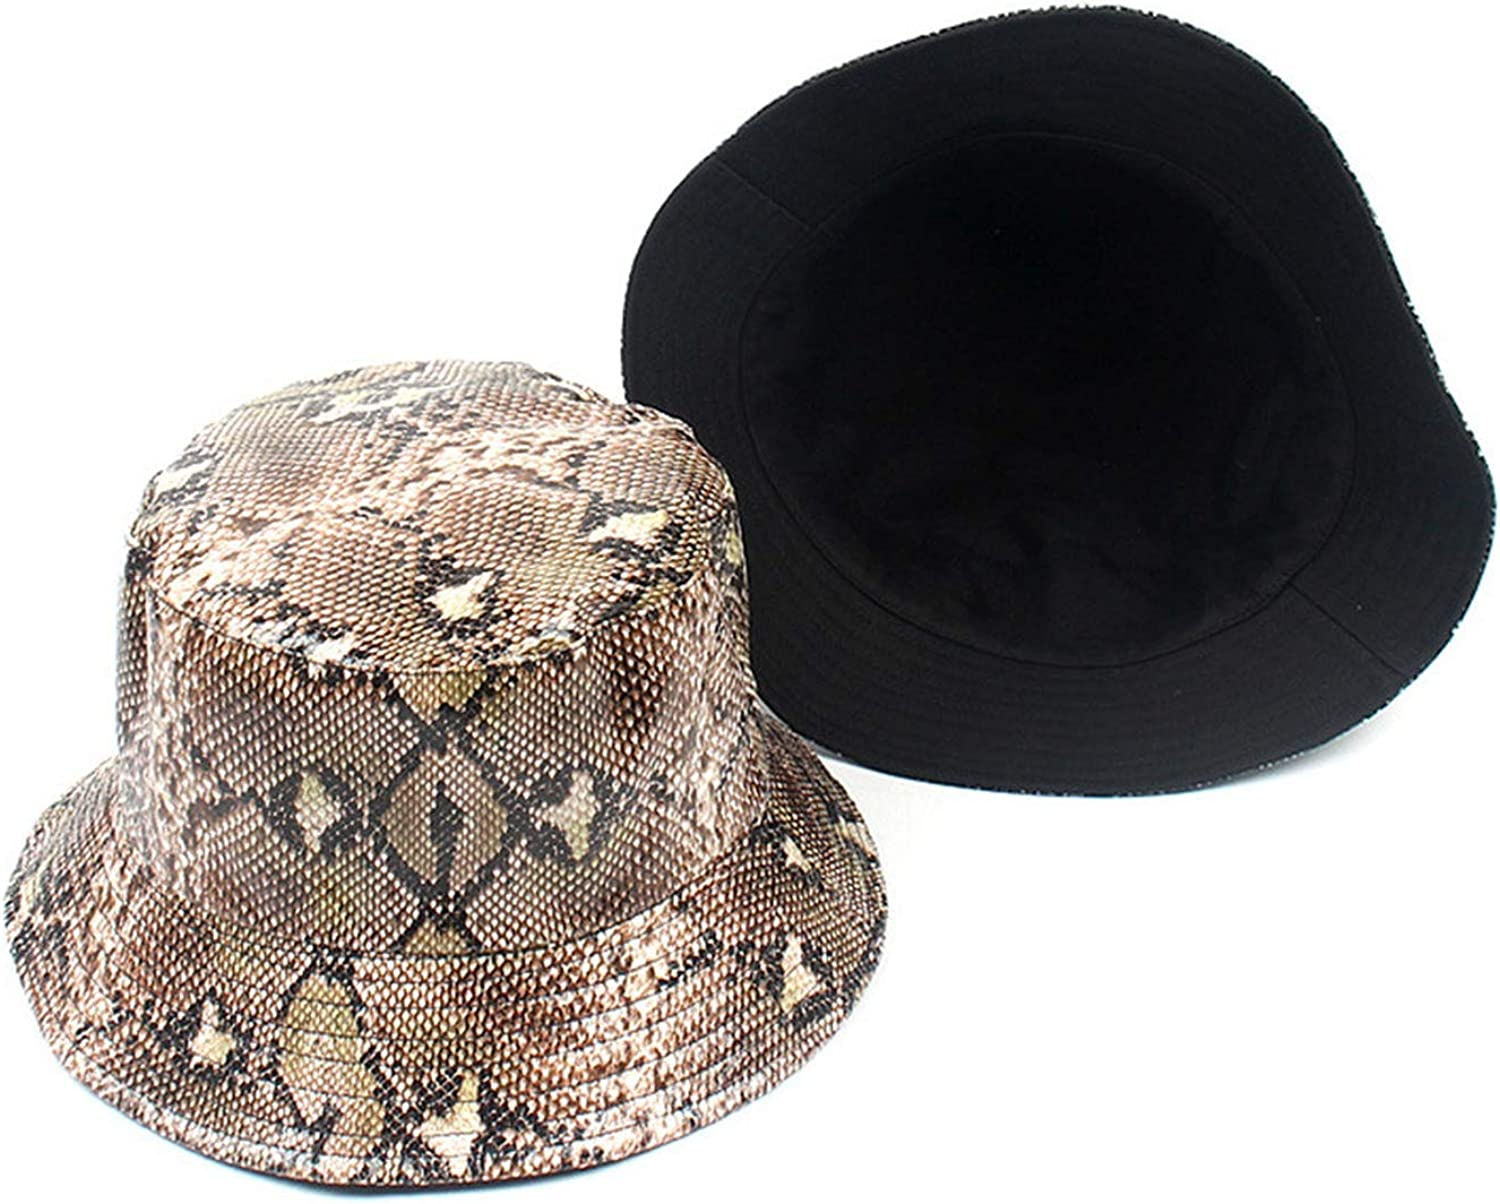 Unisex Adult Double Sided Wear Snake Grain Fisherman Hat Faux Leather Sunscreen Outdoors Cap